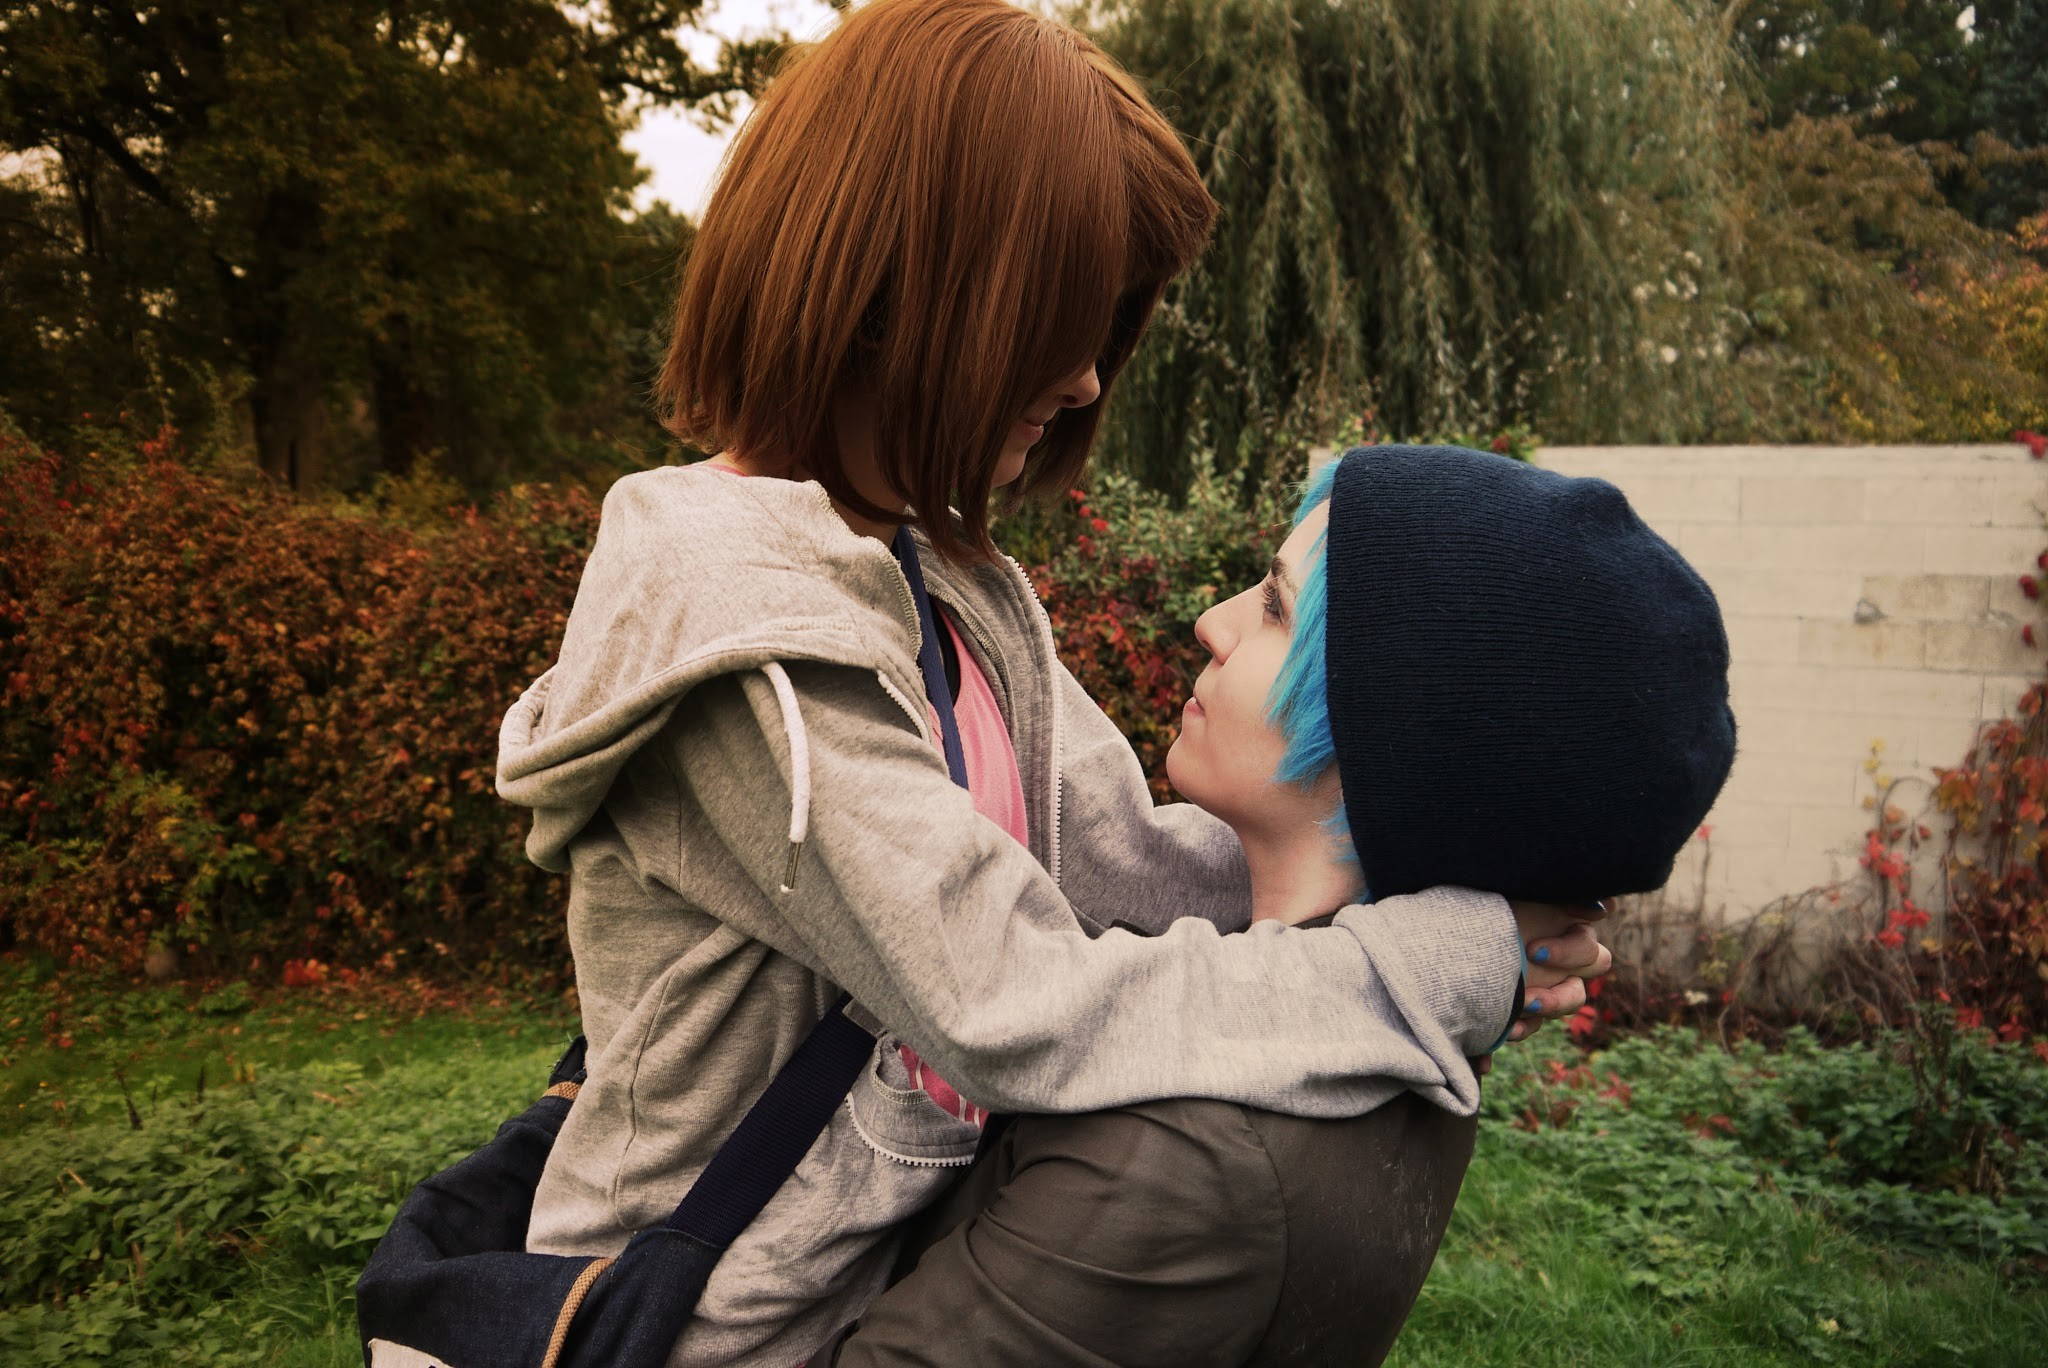 Res: 2048x1368, Chloe and Max Cosplay by Flopywette